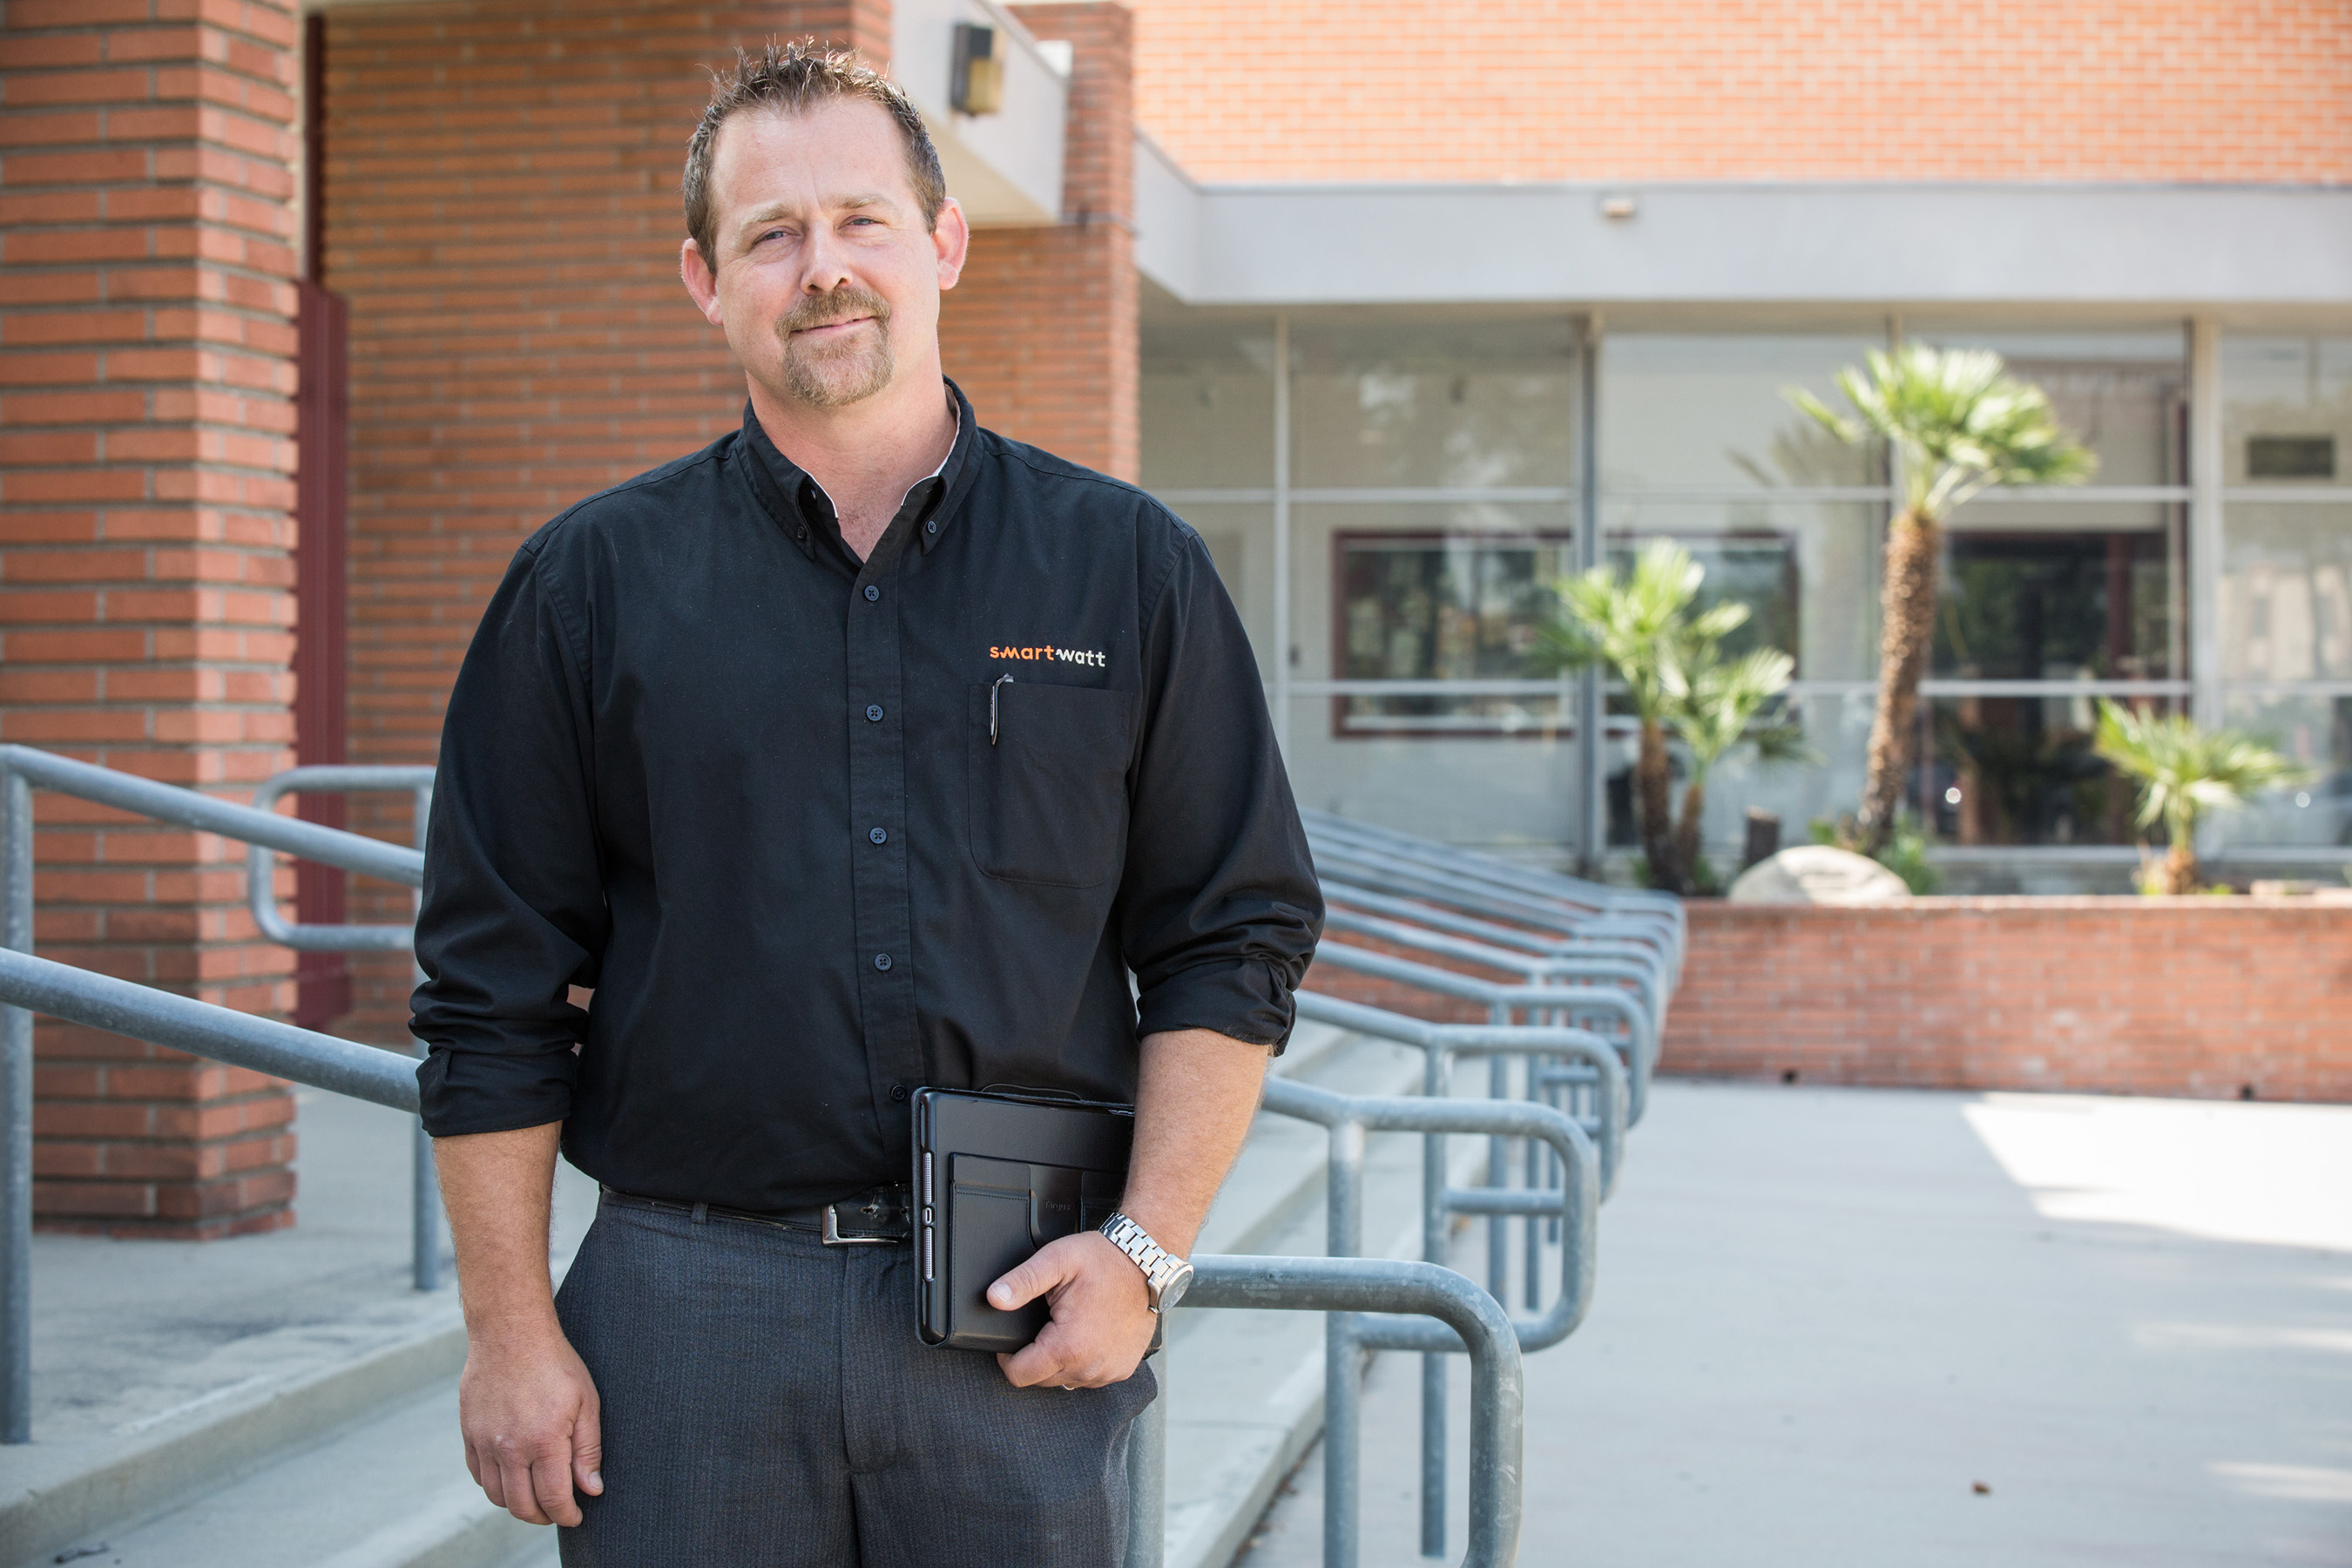 Joshua Veblen, business manager at SmartWatt, an engineering firm focused on energy optimization, worked with Carrier to provide California's Fontana School District a multi-year plan to upgrade more than 200 of its rooftop climate control systems to improve comfort and energy savings at 45 school sites.